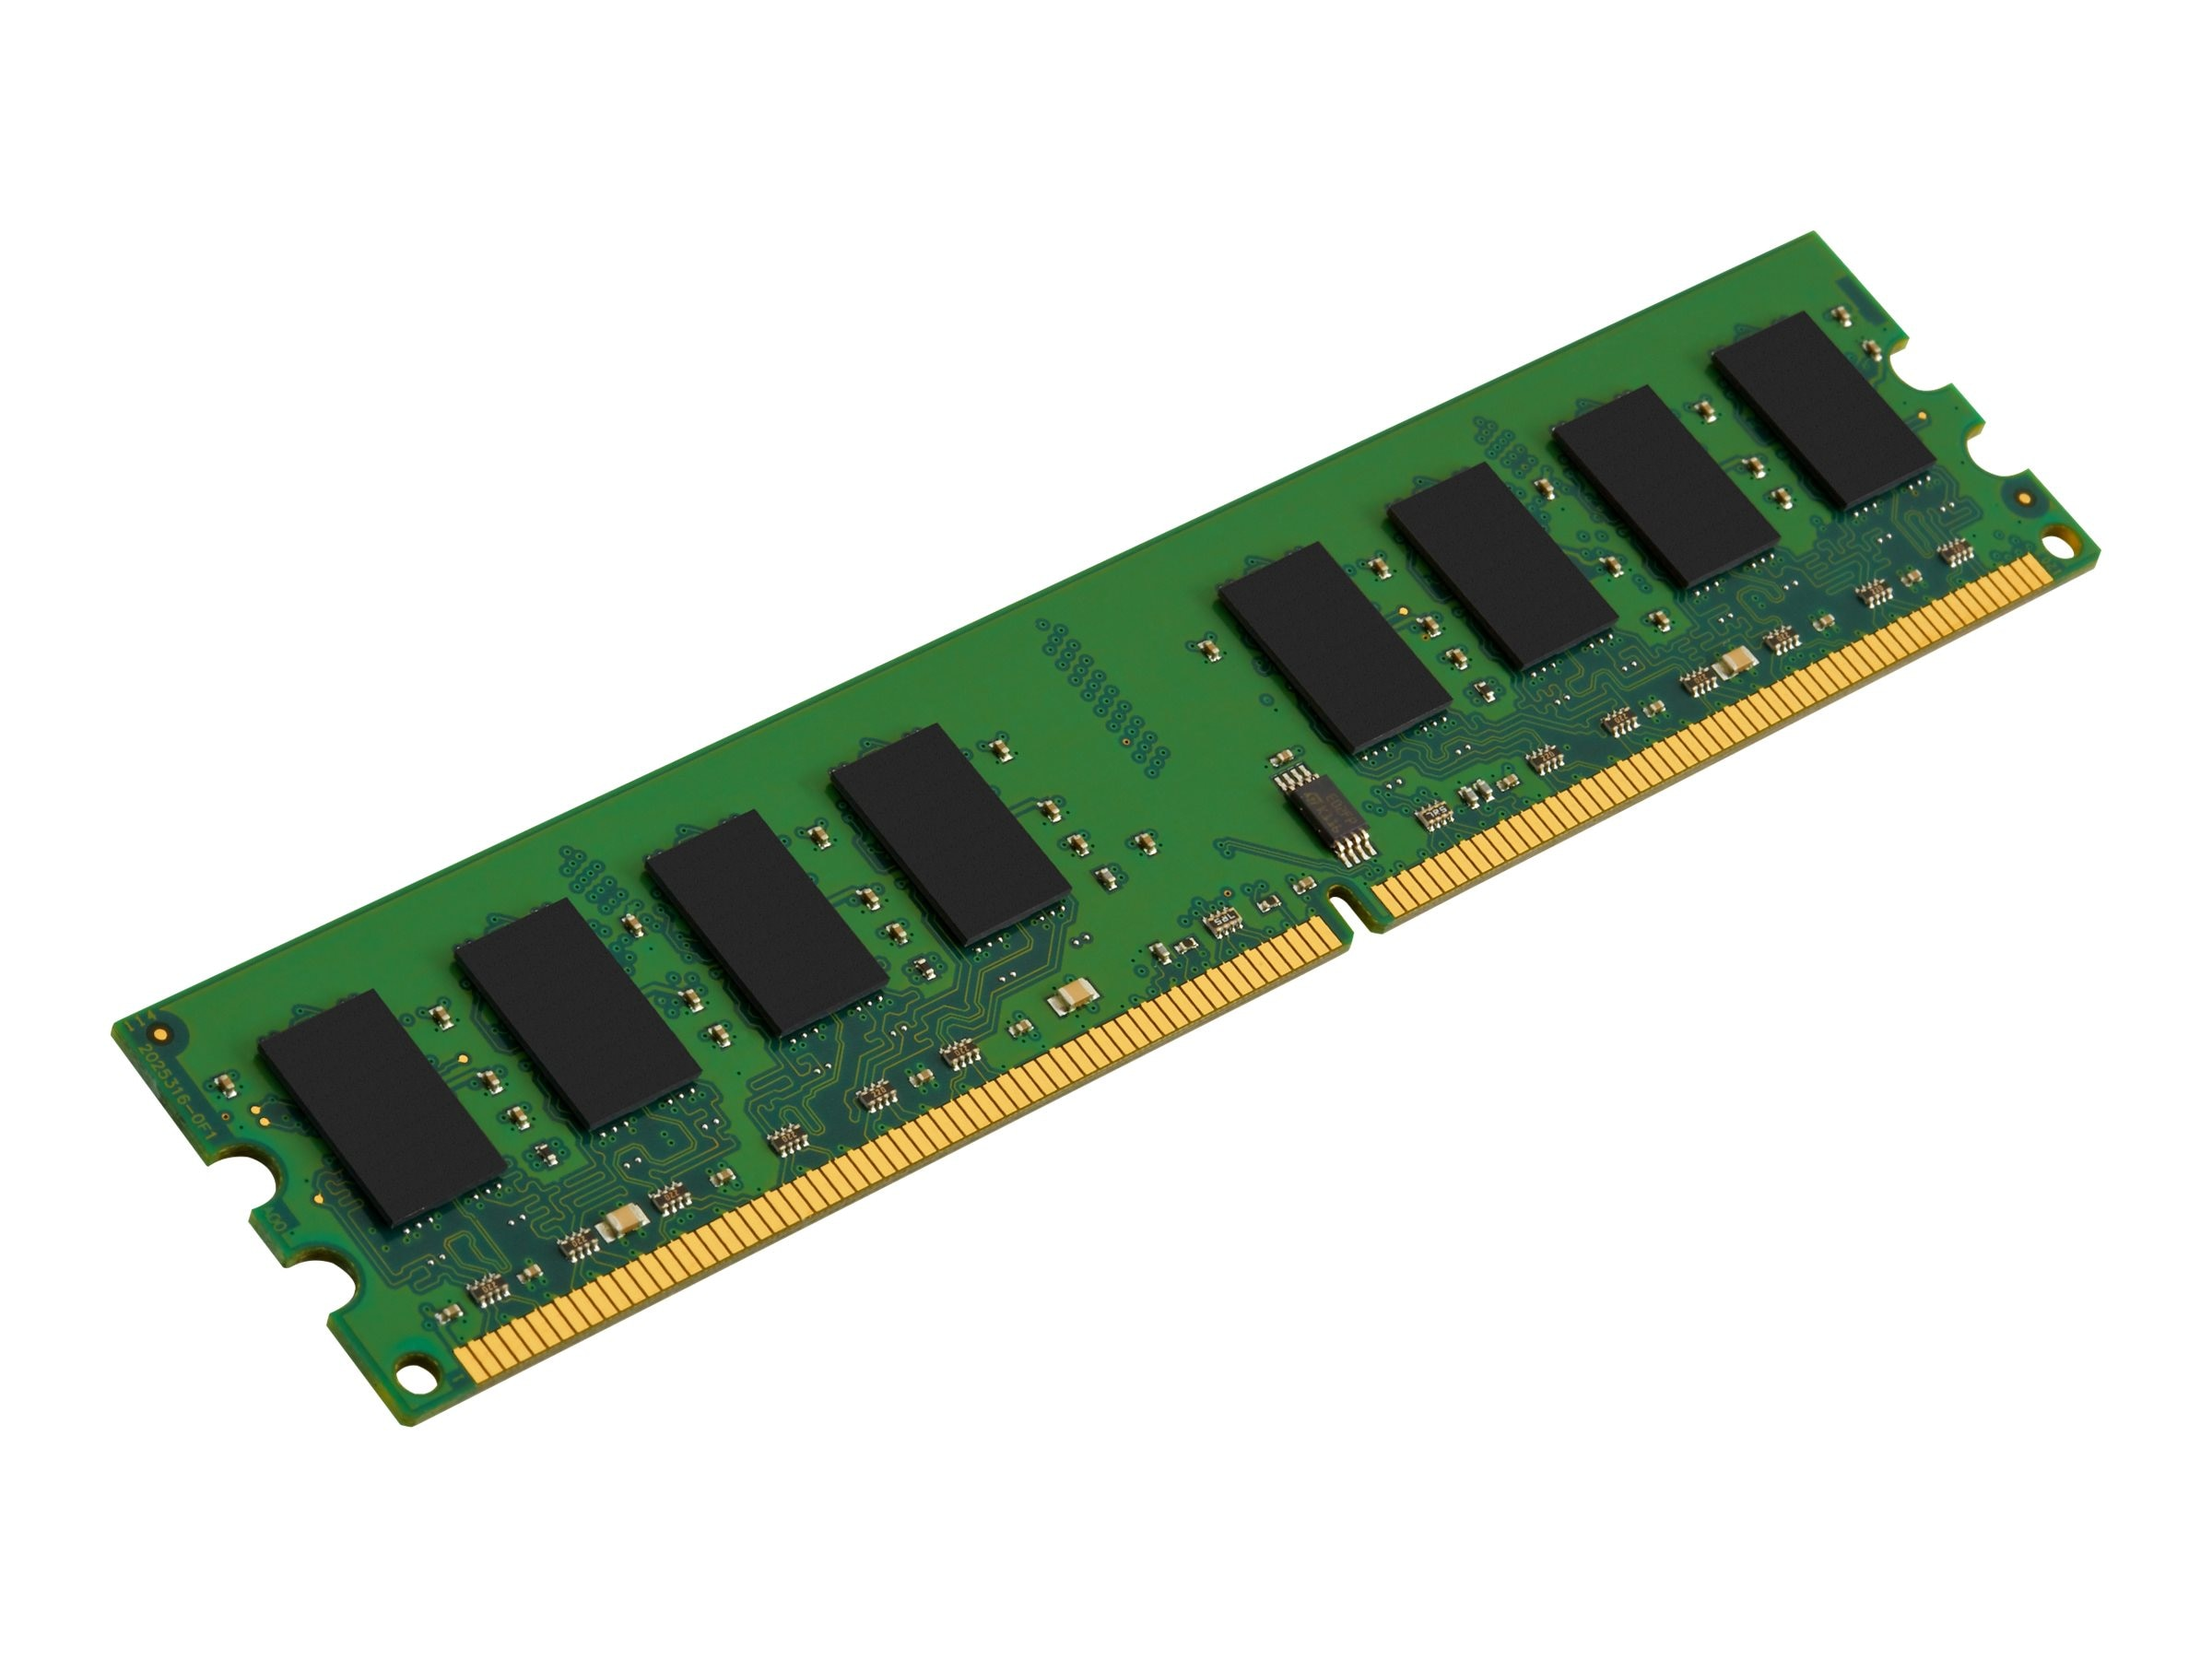 Kingston 2GB PC2-5300 240-pin DDR2 SDRAM UDIMM for Select HP Models, KTH-XW4300/2G, 7191524, Memory